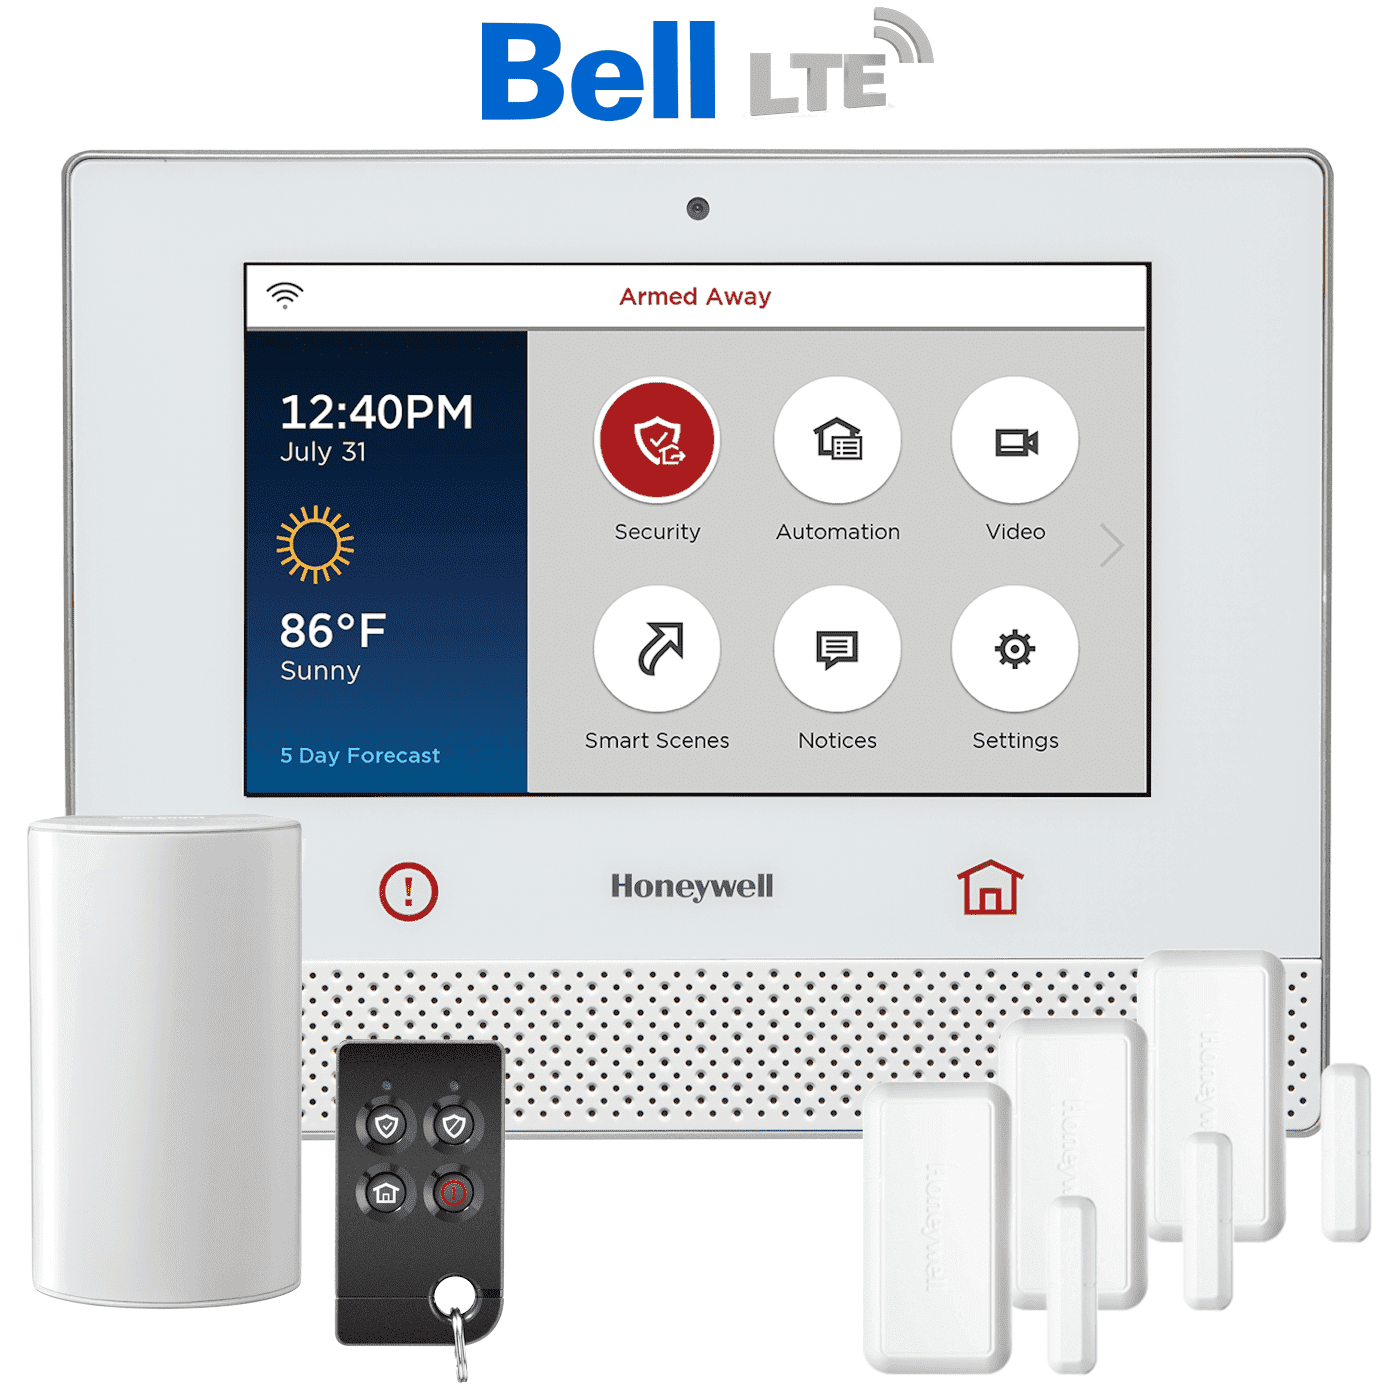 honeywell-lyric-cellular-wireless-security-system -kit-for-bell-lte-canada-network-24 png